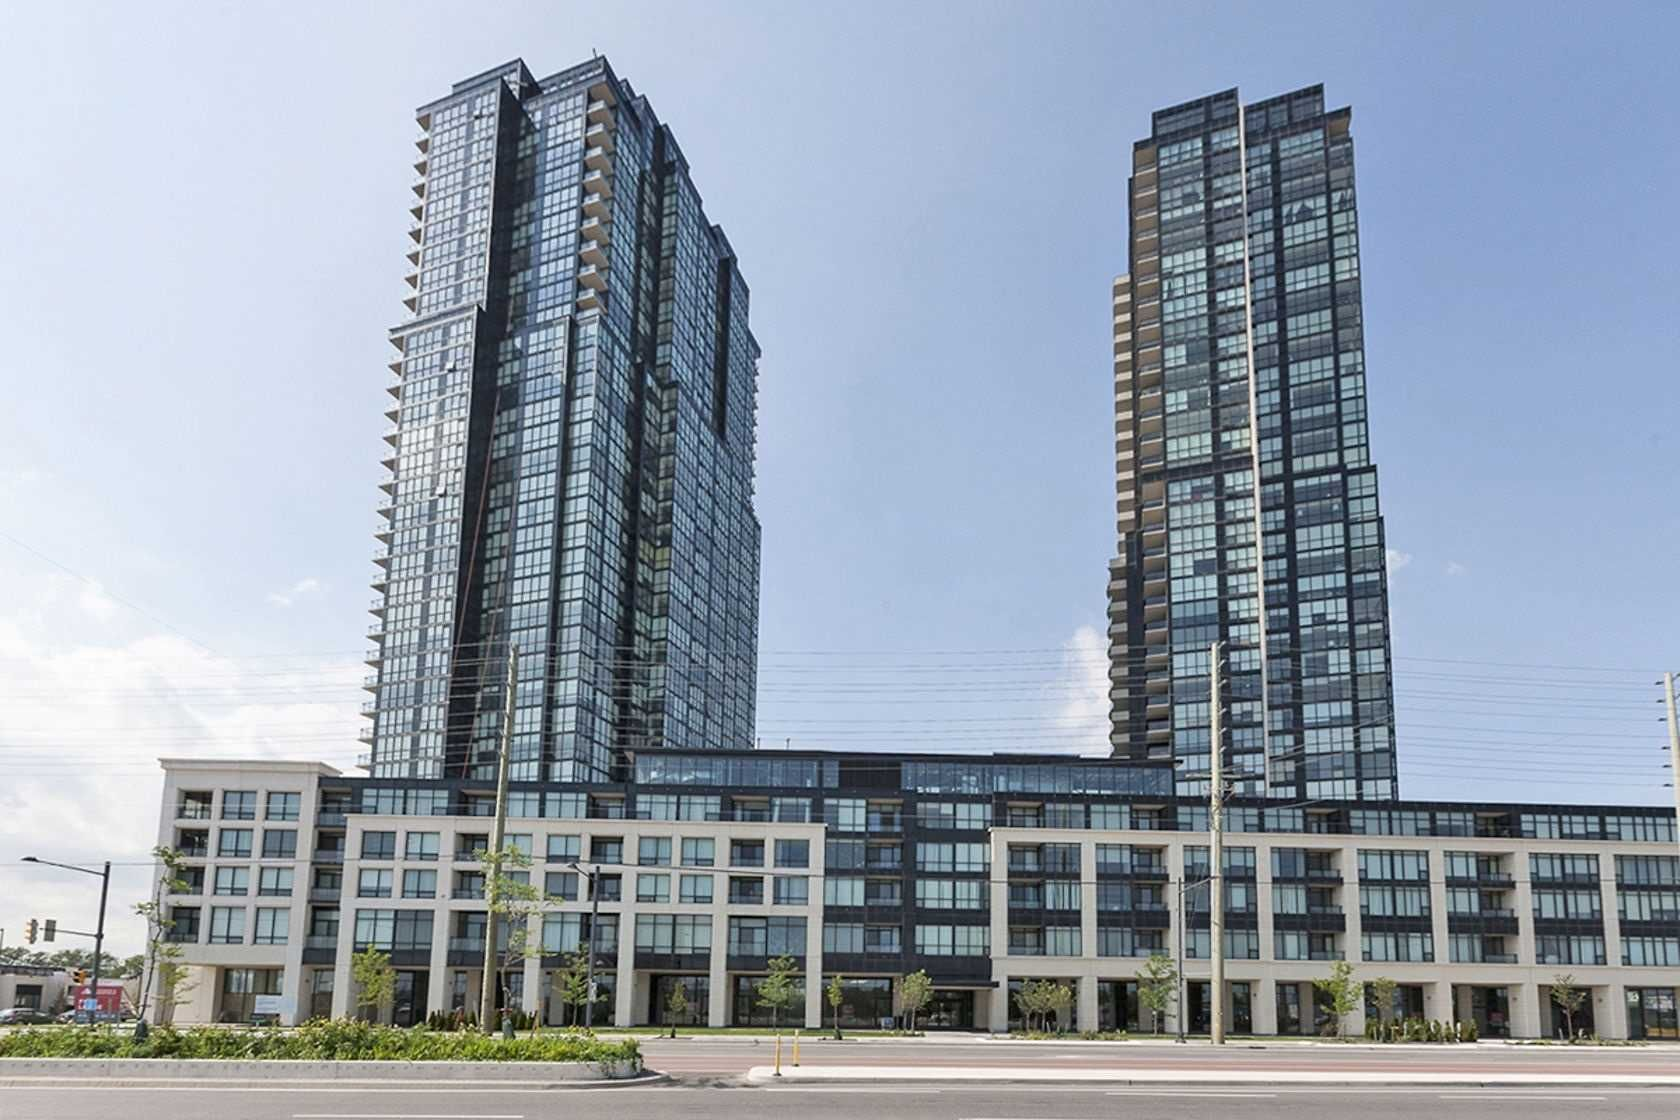 2910 Highway 7 Ave W, unit 1904 for rent in Vaughan Metropolitan Centre - image #1